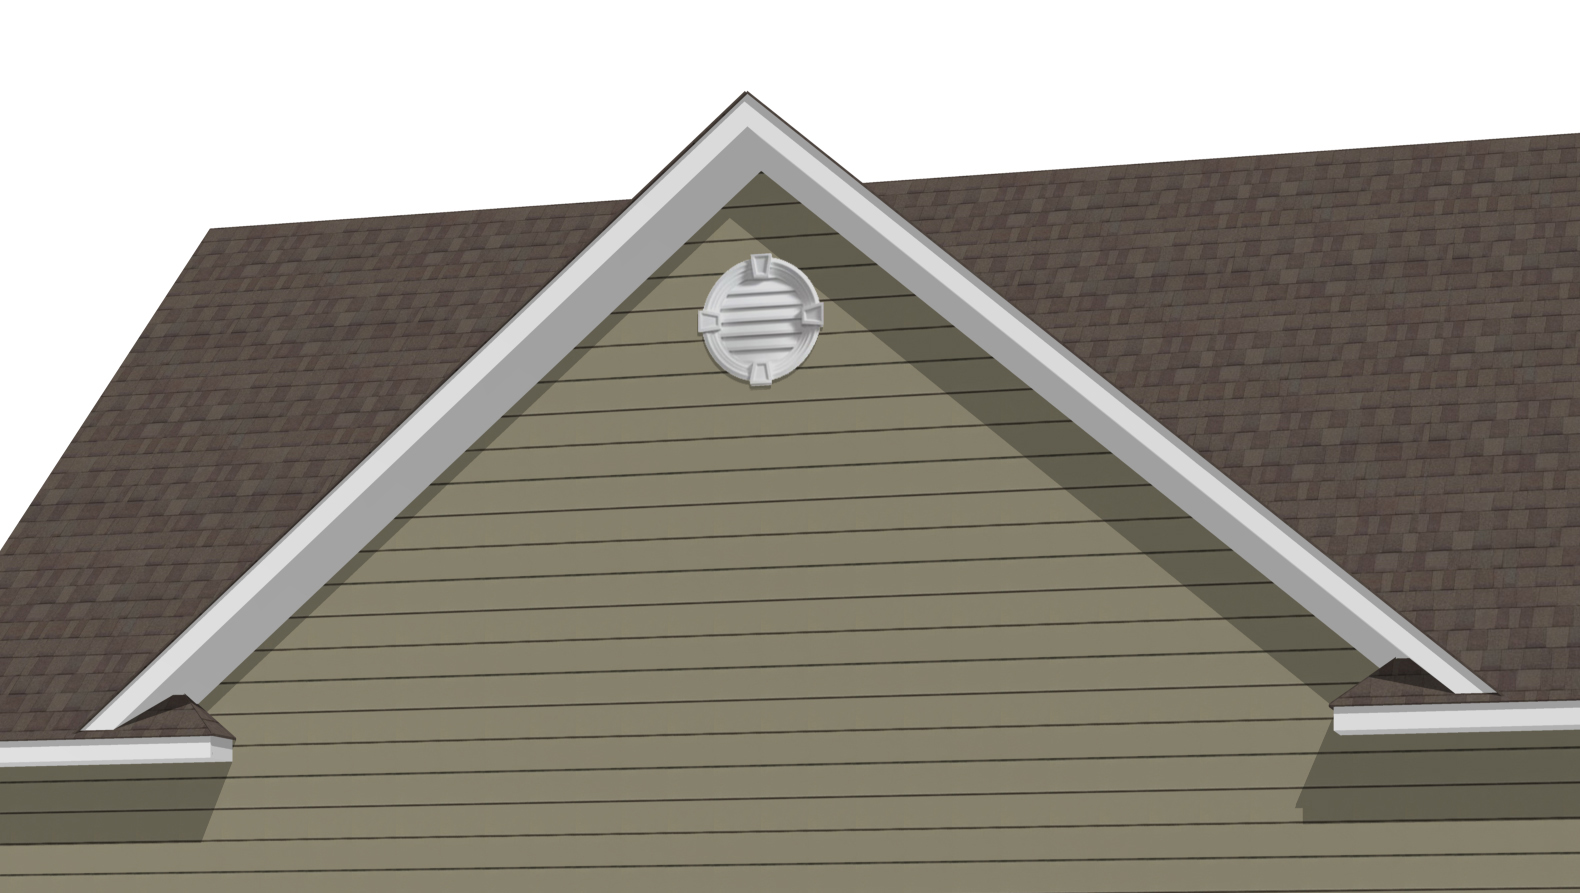 26'6' Reverse Gable Dormer 12-12 on 12-12 with optional cornice returns and decorative molding